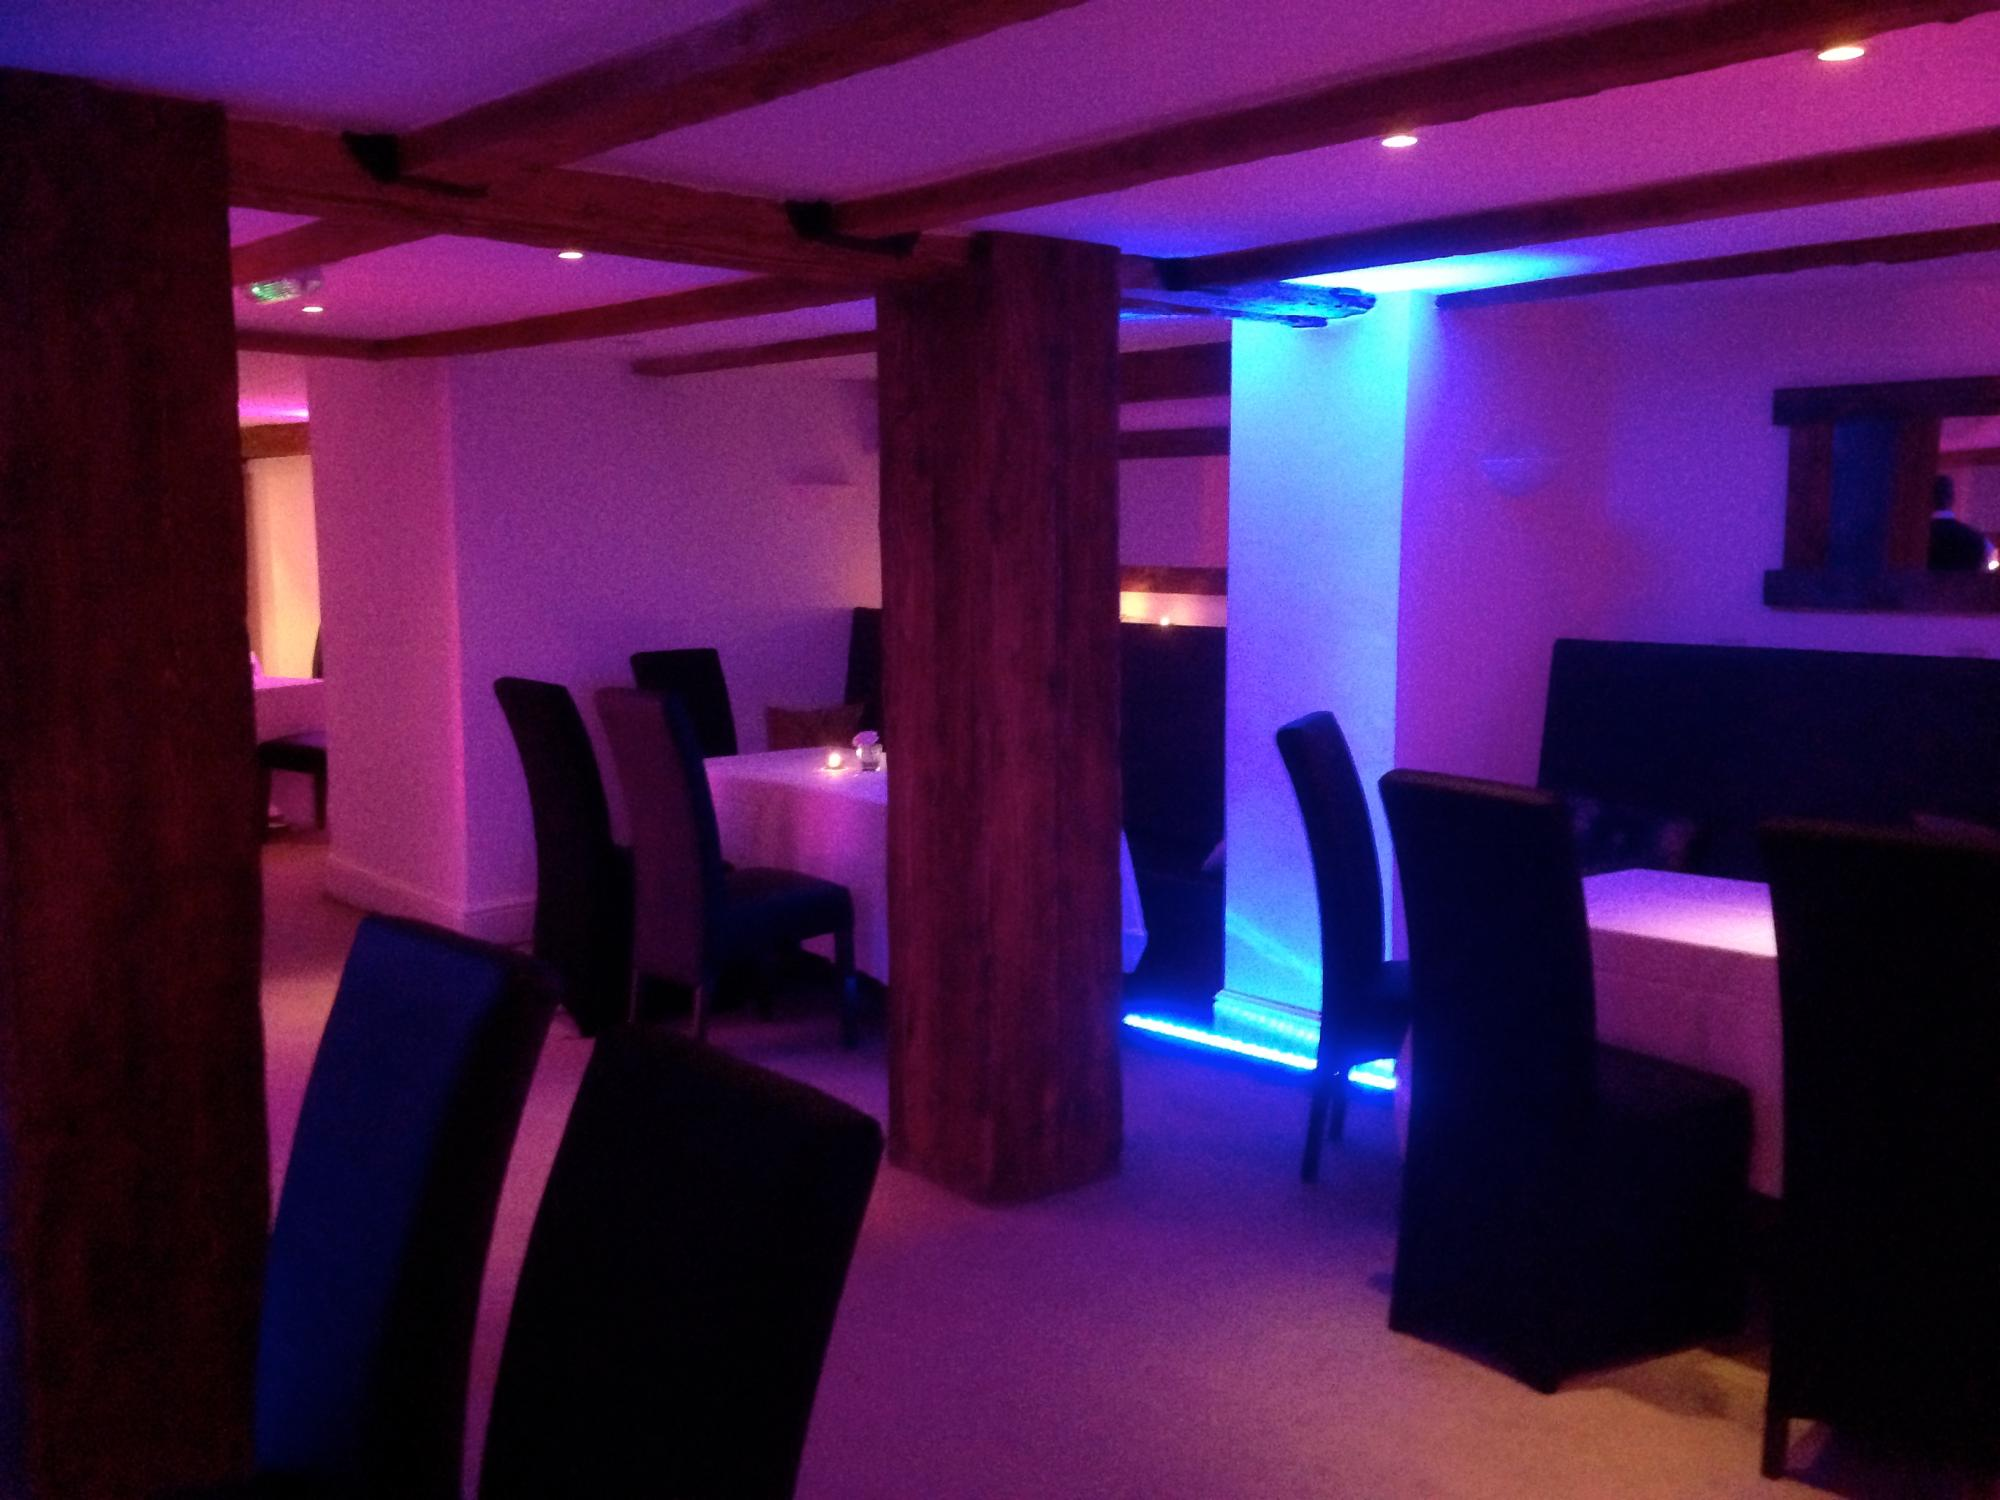 Exceptionnel £795 Package Includes; 2 Hour Photobooth, 5 Hour Disco And 6 Uplights And  Is Subject To Availability   Certain Dates May Be More Expensive. Prices  Based On ...